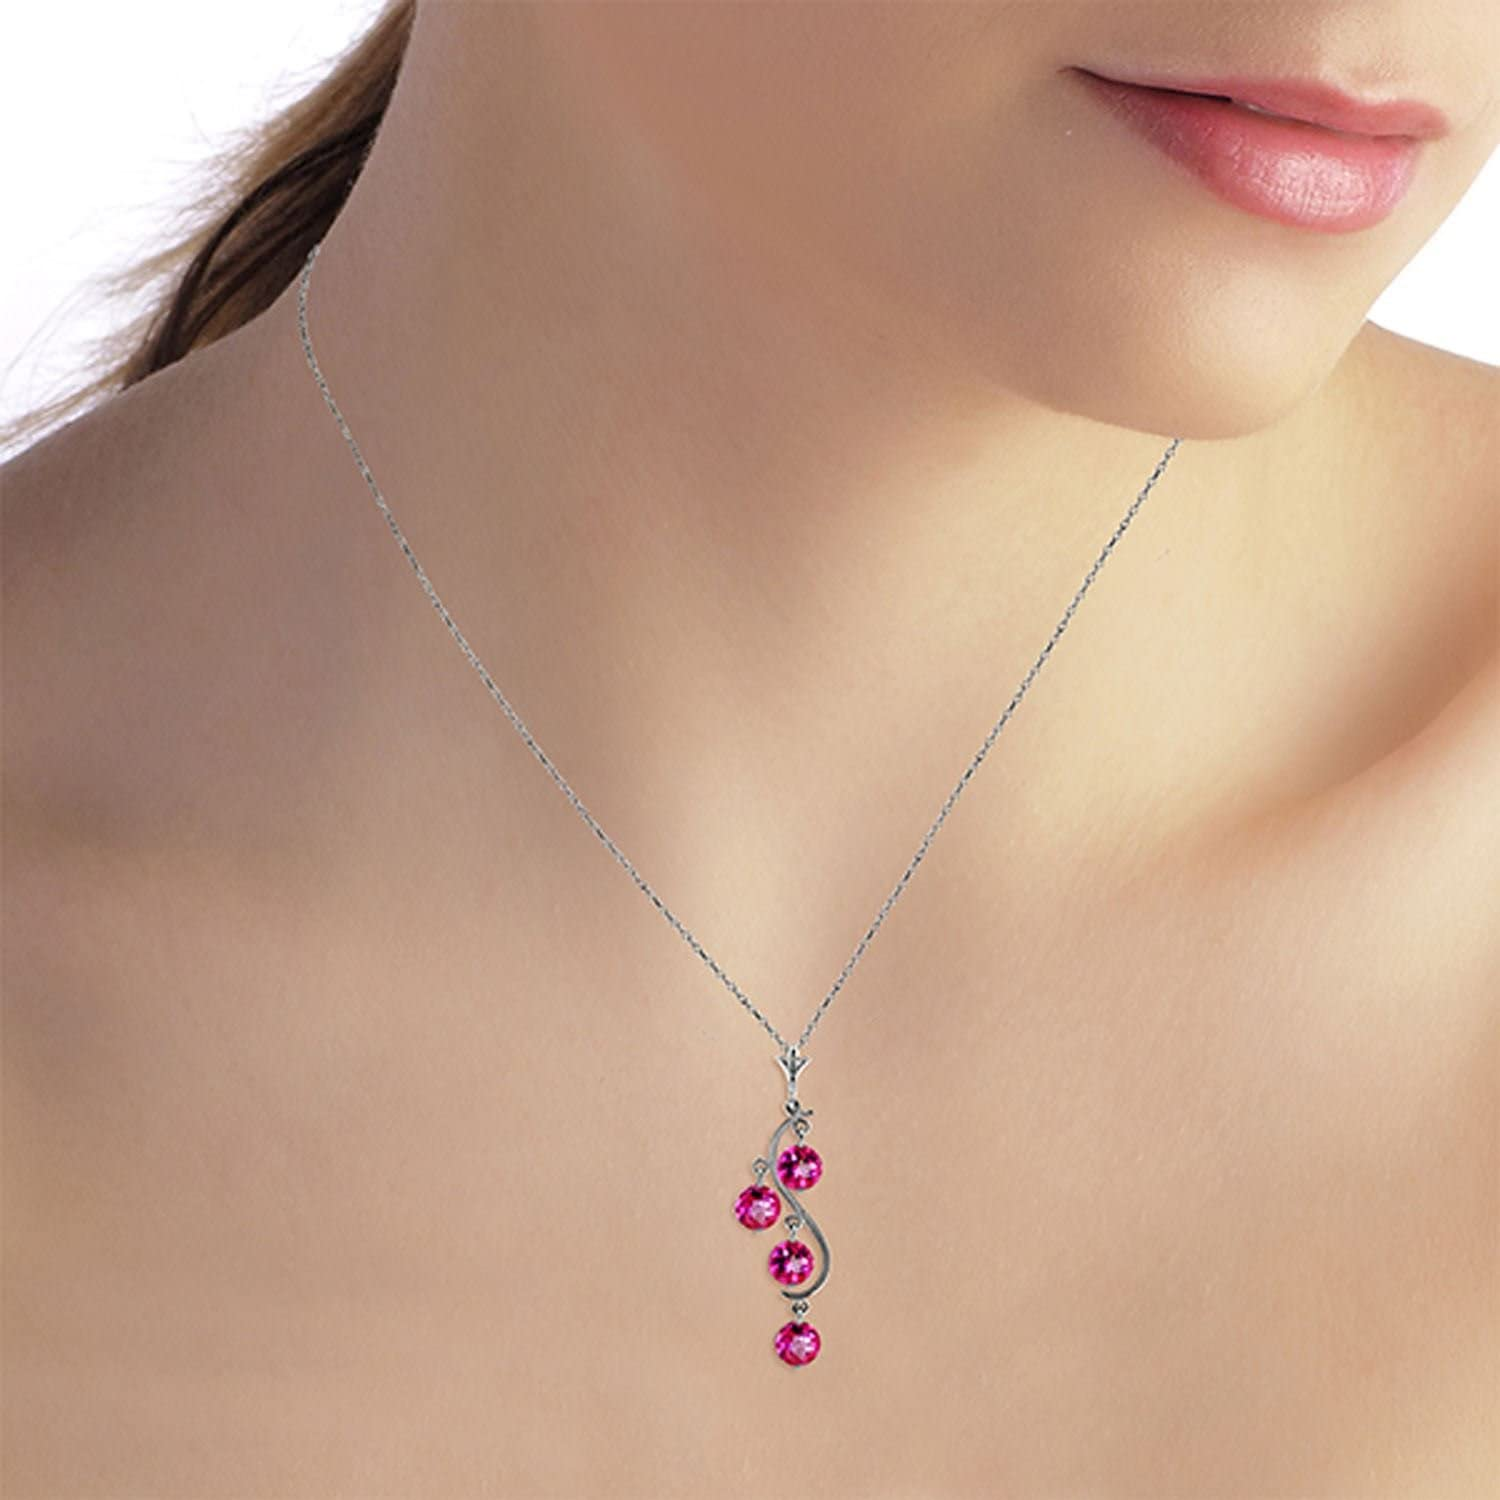 ALARRI 14K Solid White Gold Heart Necklace w// Dangling Natural Pink Topaz with 18 Inch Chain Length